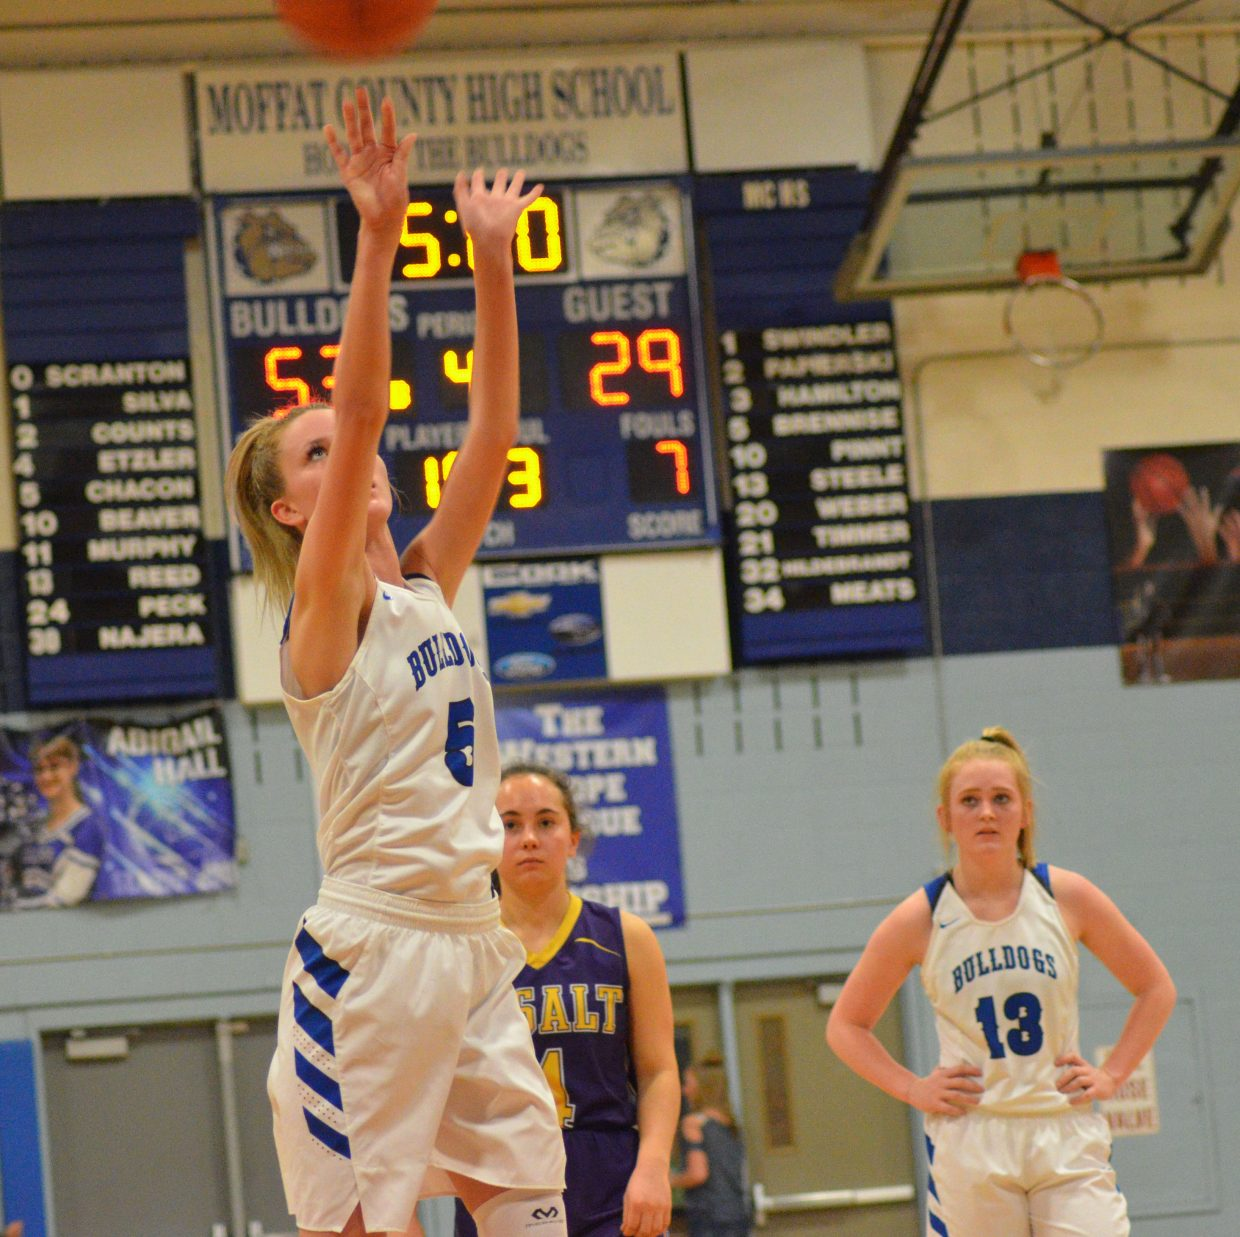 Moffat County High School's Kinlie Brennise puts up a free throw to increase the Lady Bulldog lead.